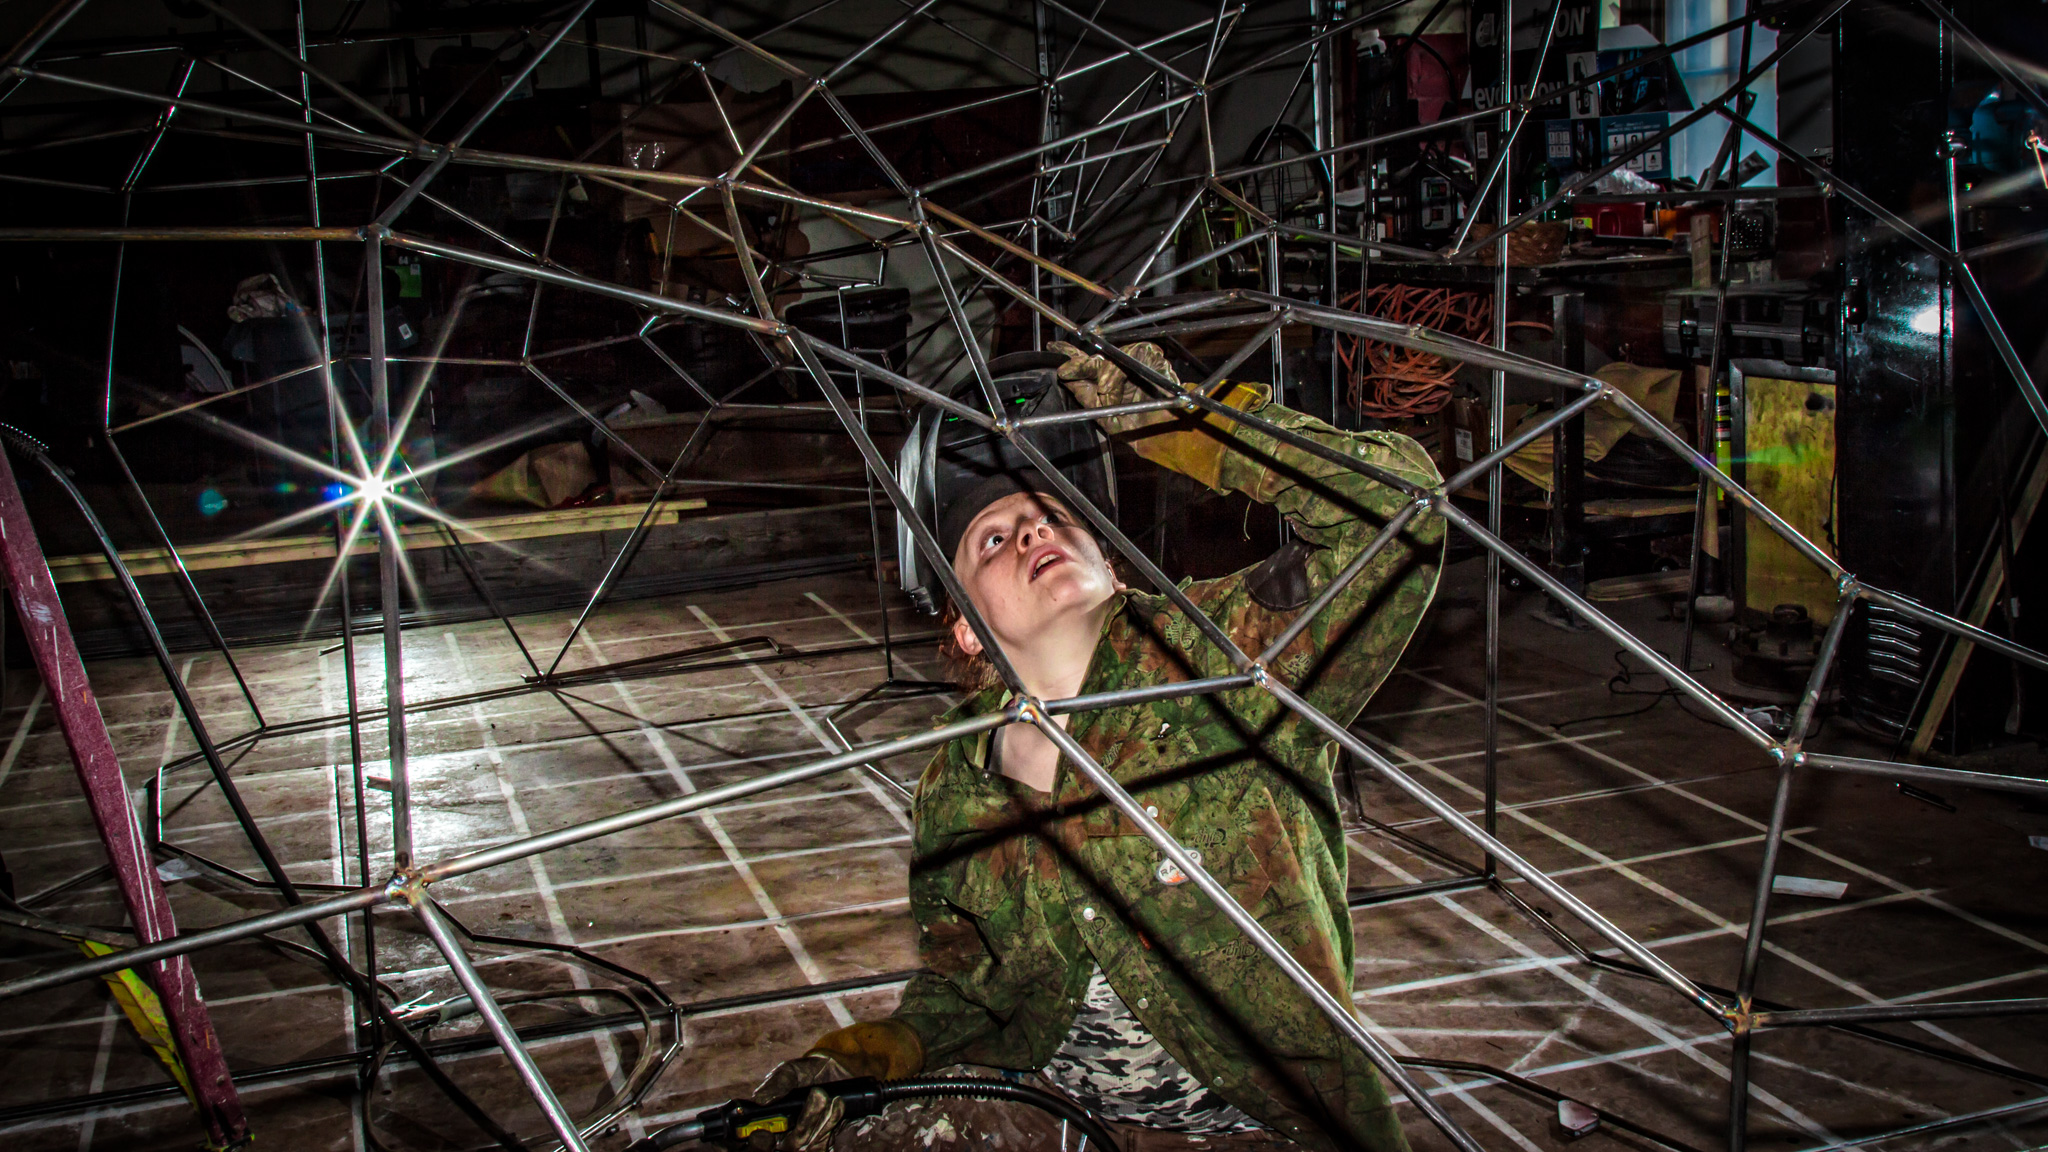 woman inspecting weld wire frame structure artemis boston